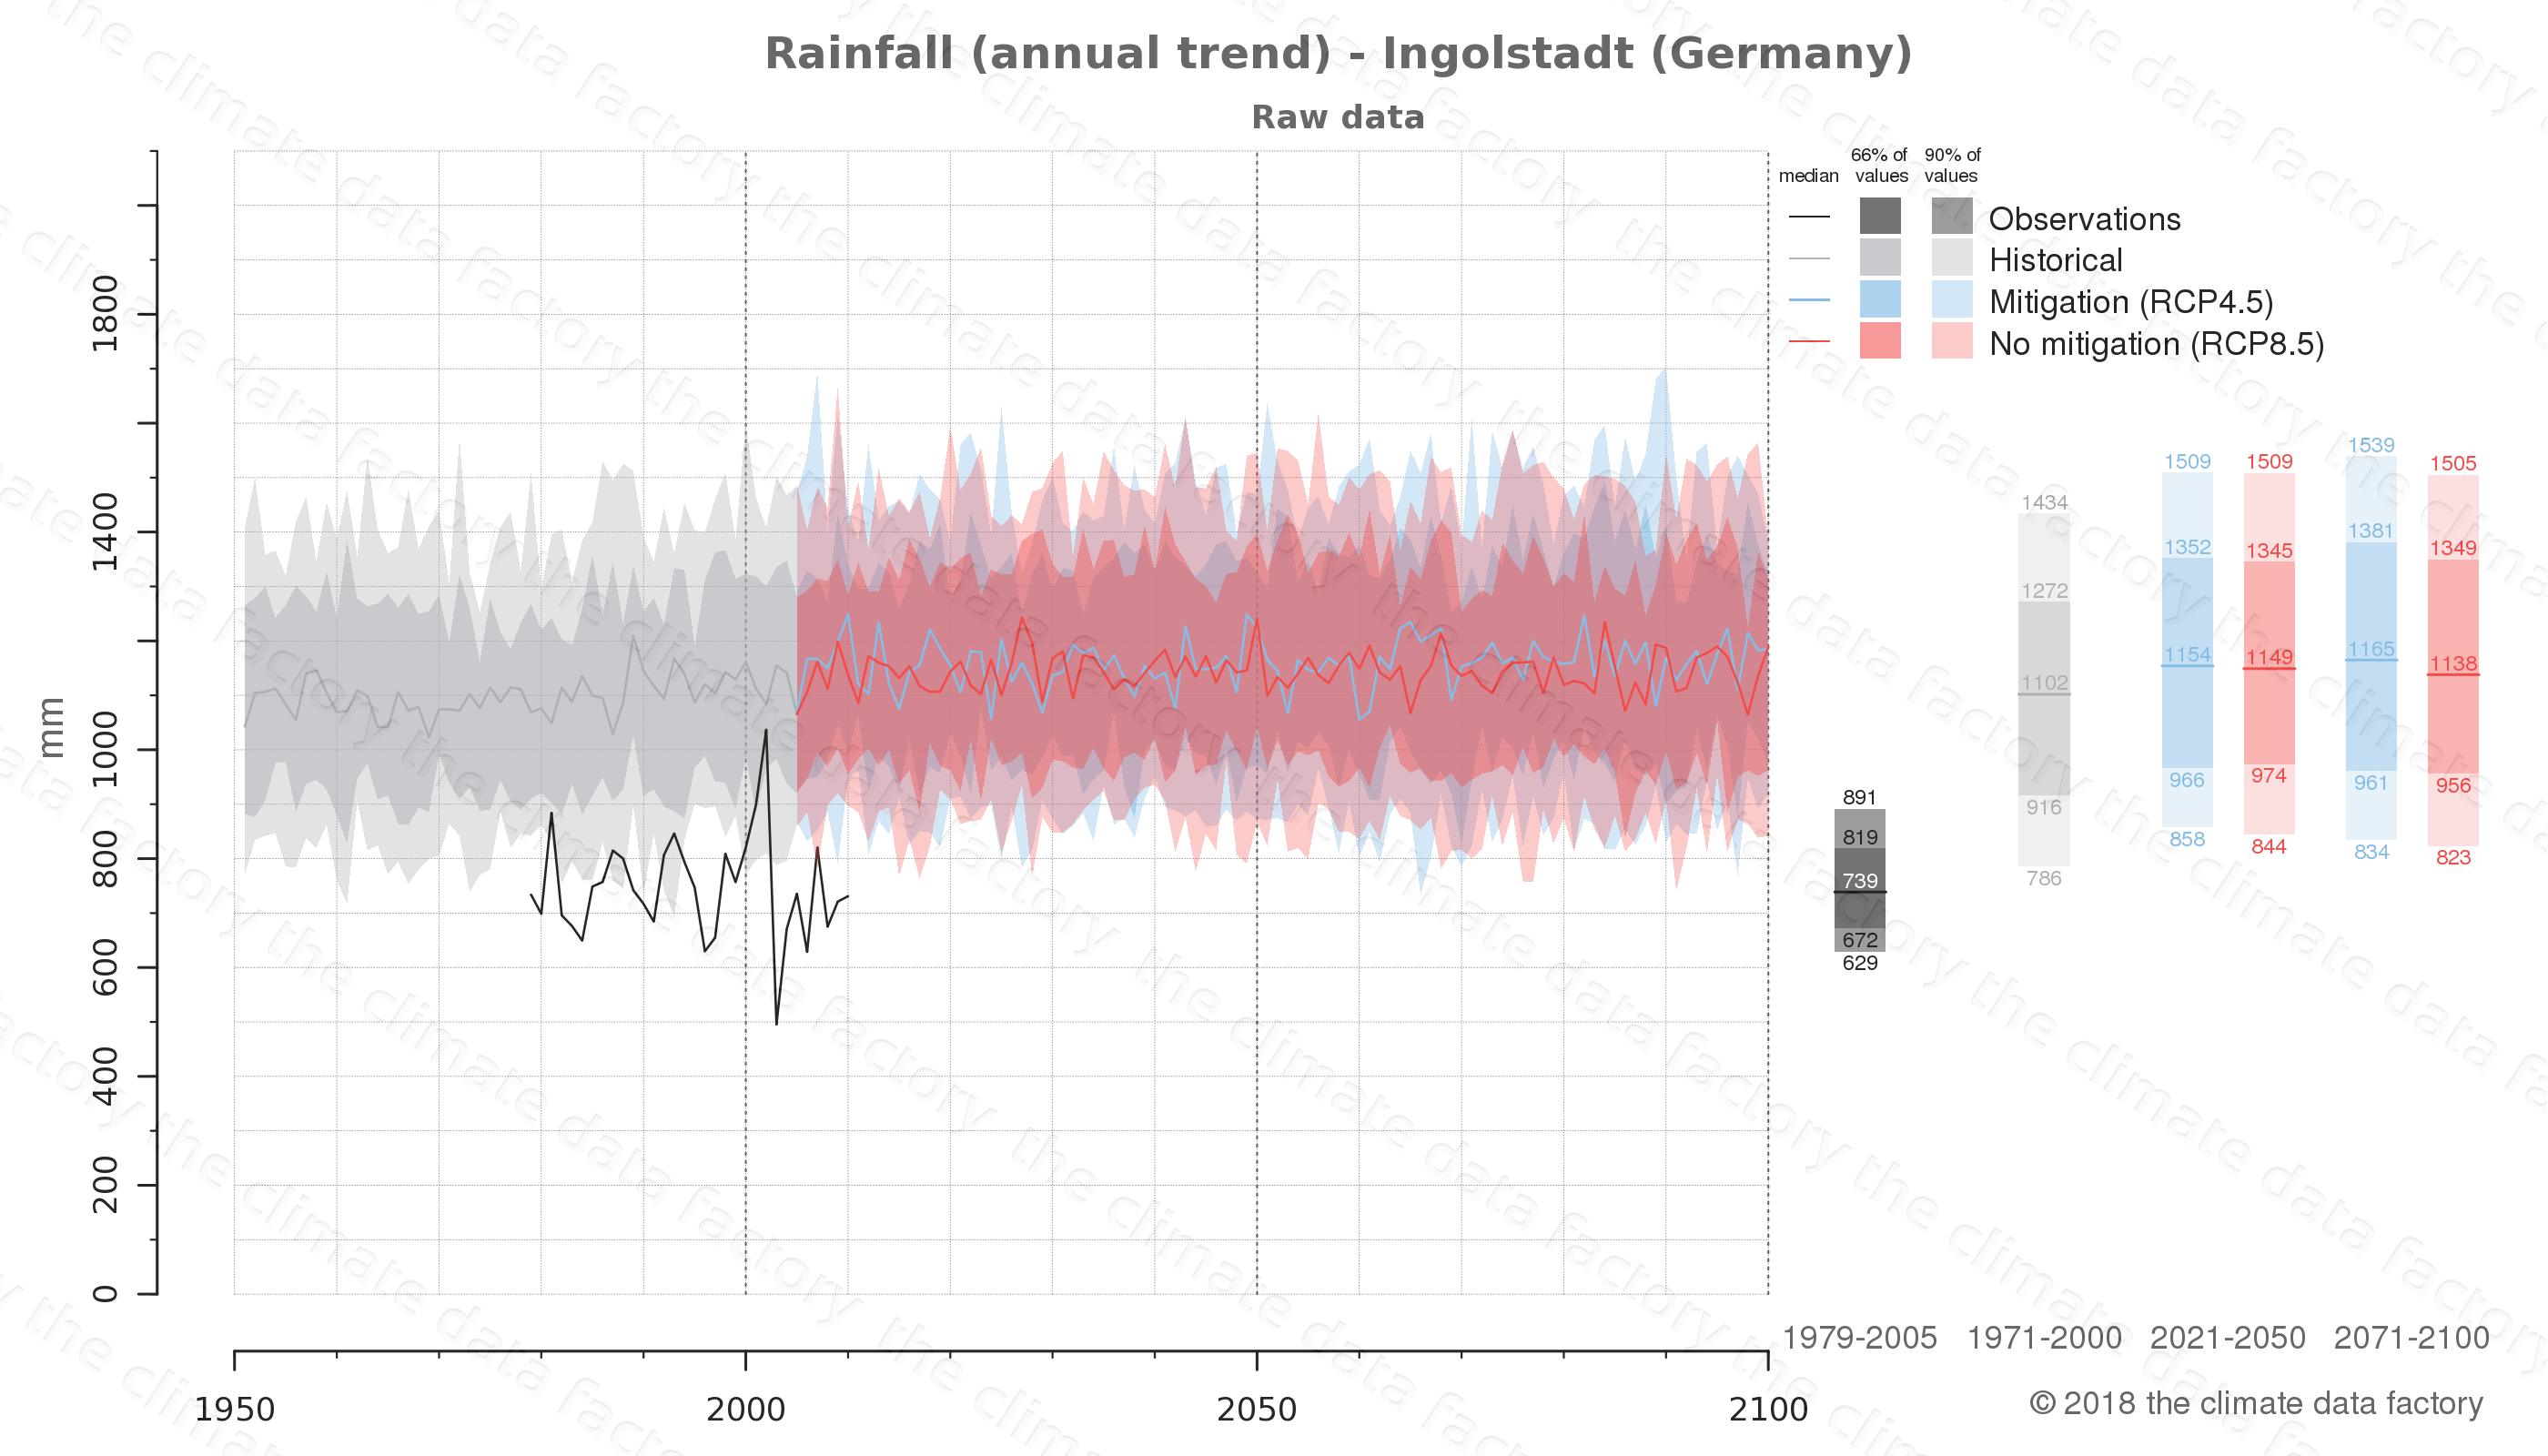 climate change data policy adaptation climate graph city data rainfall ingolstadt germany